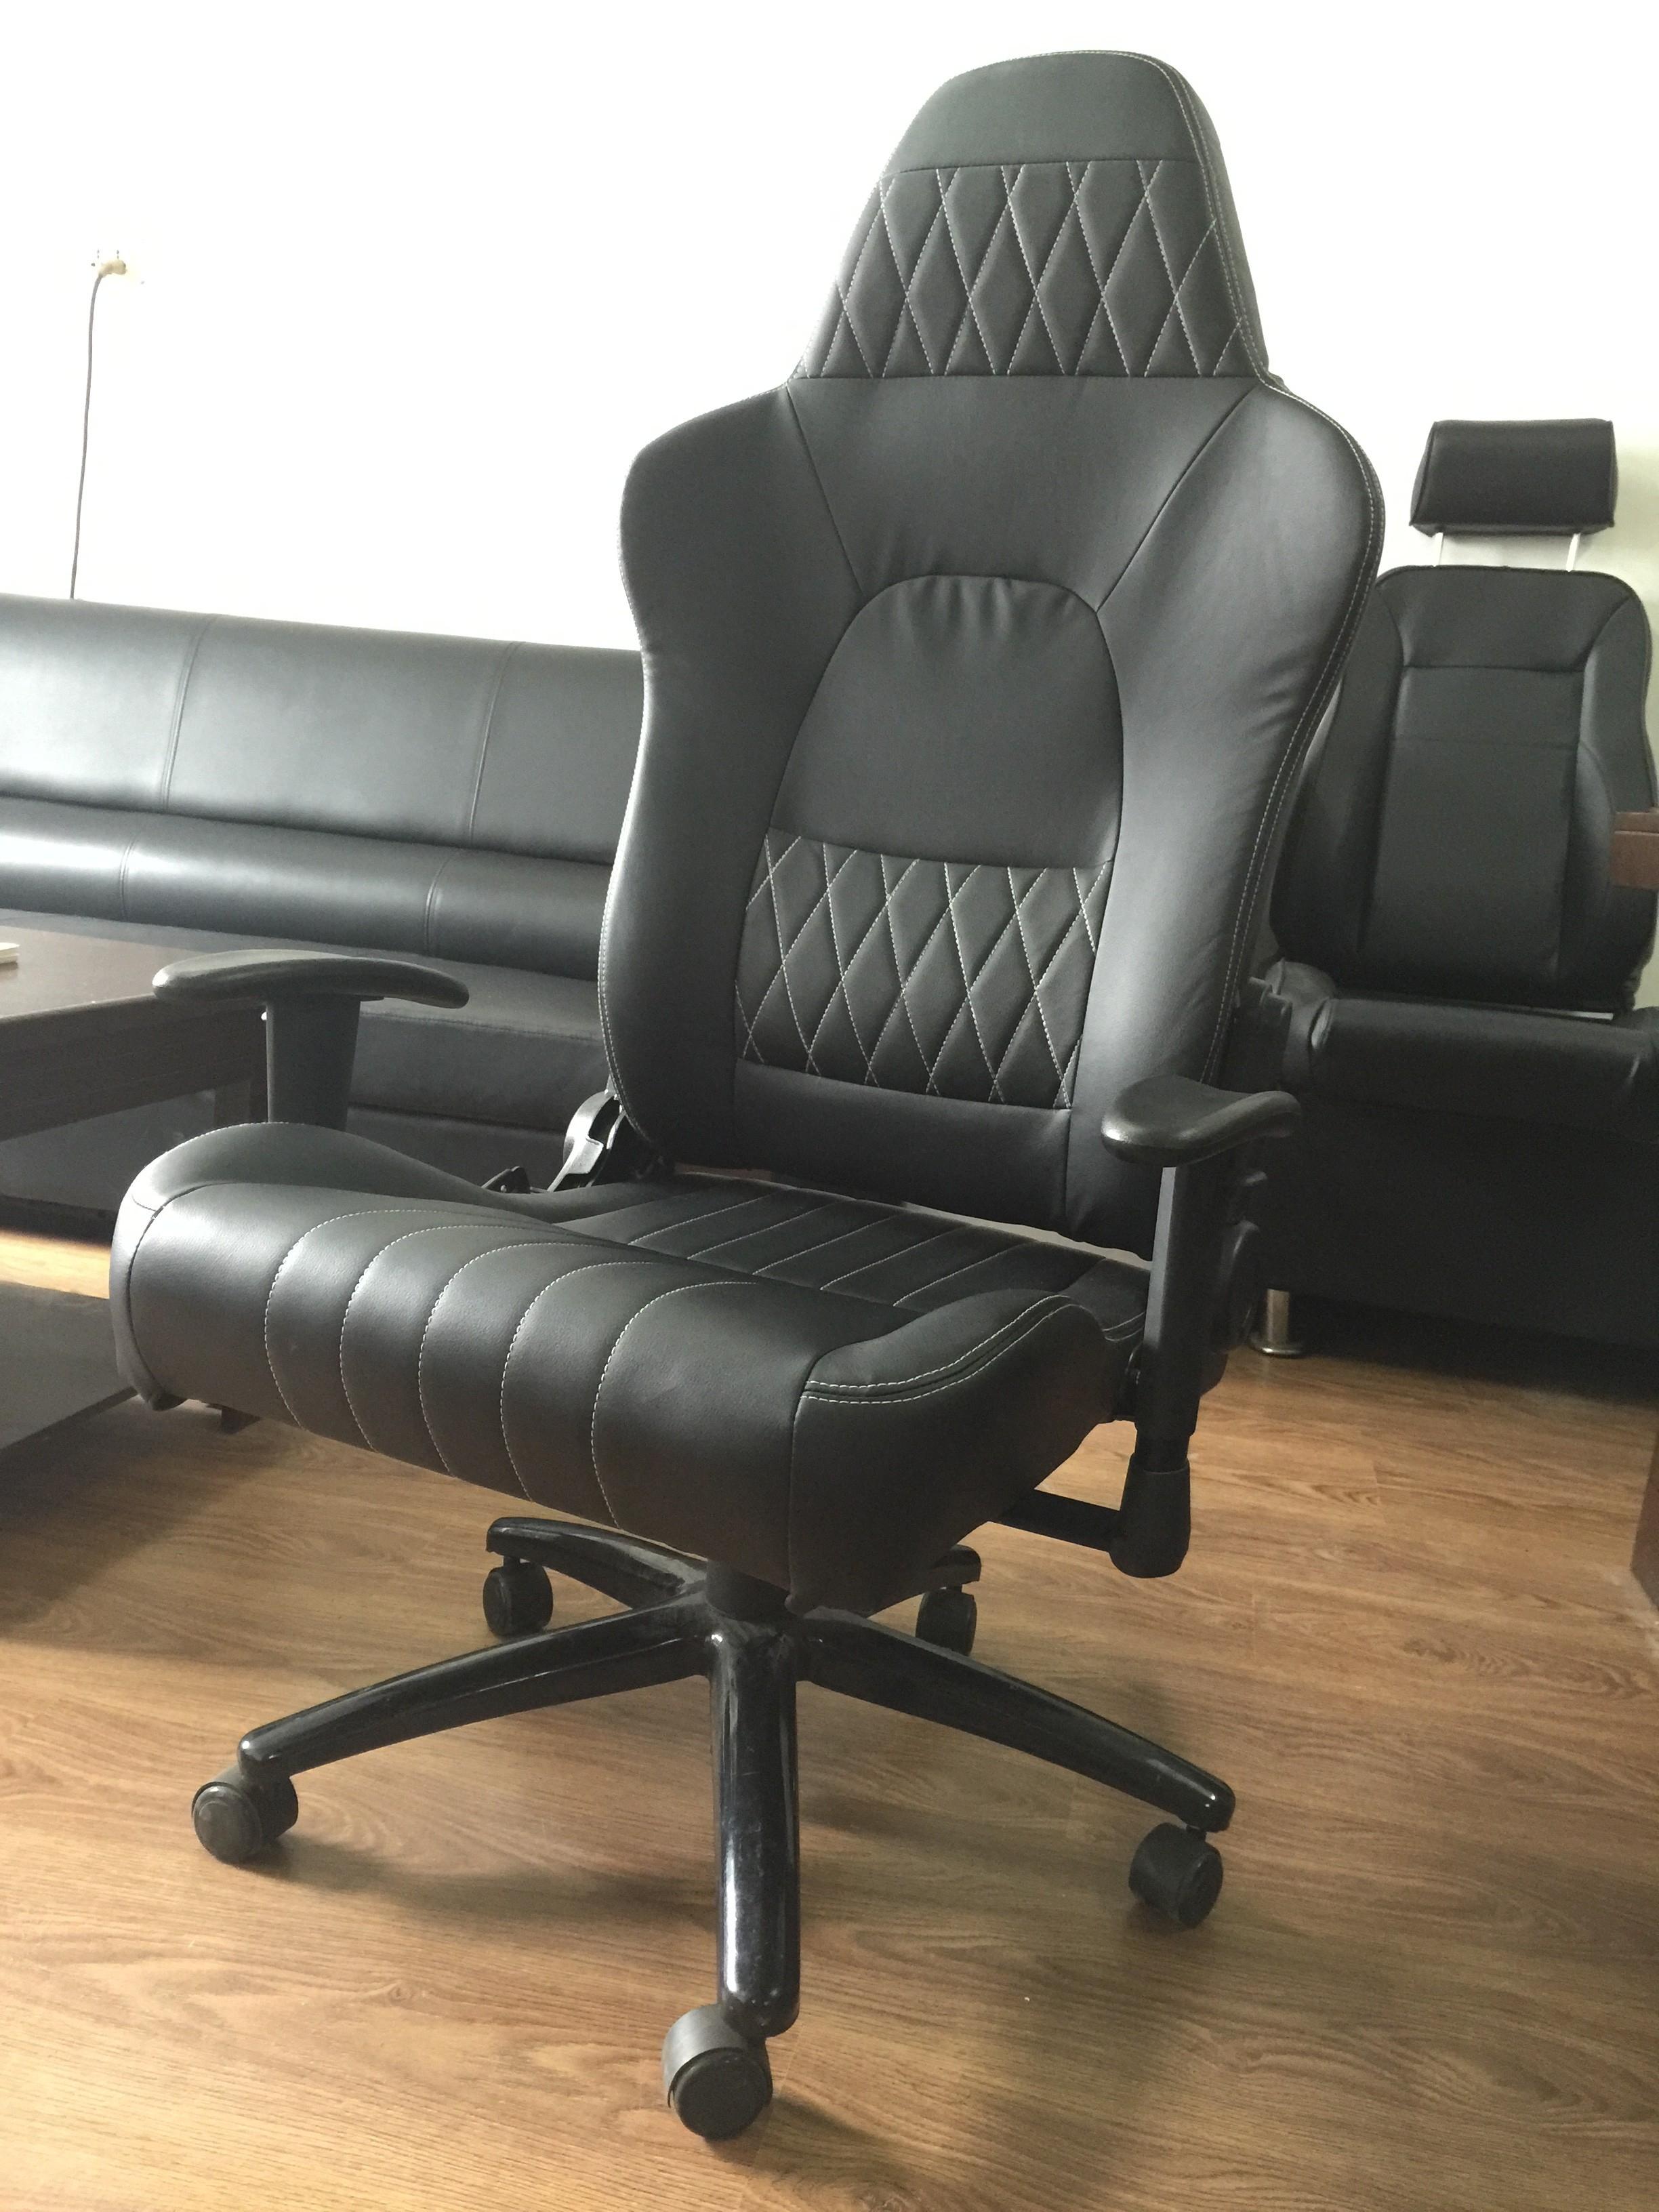 desk chair swivel no wheels slipcovers dining chairs modern black ergonomic office with